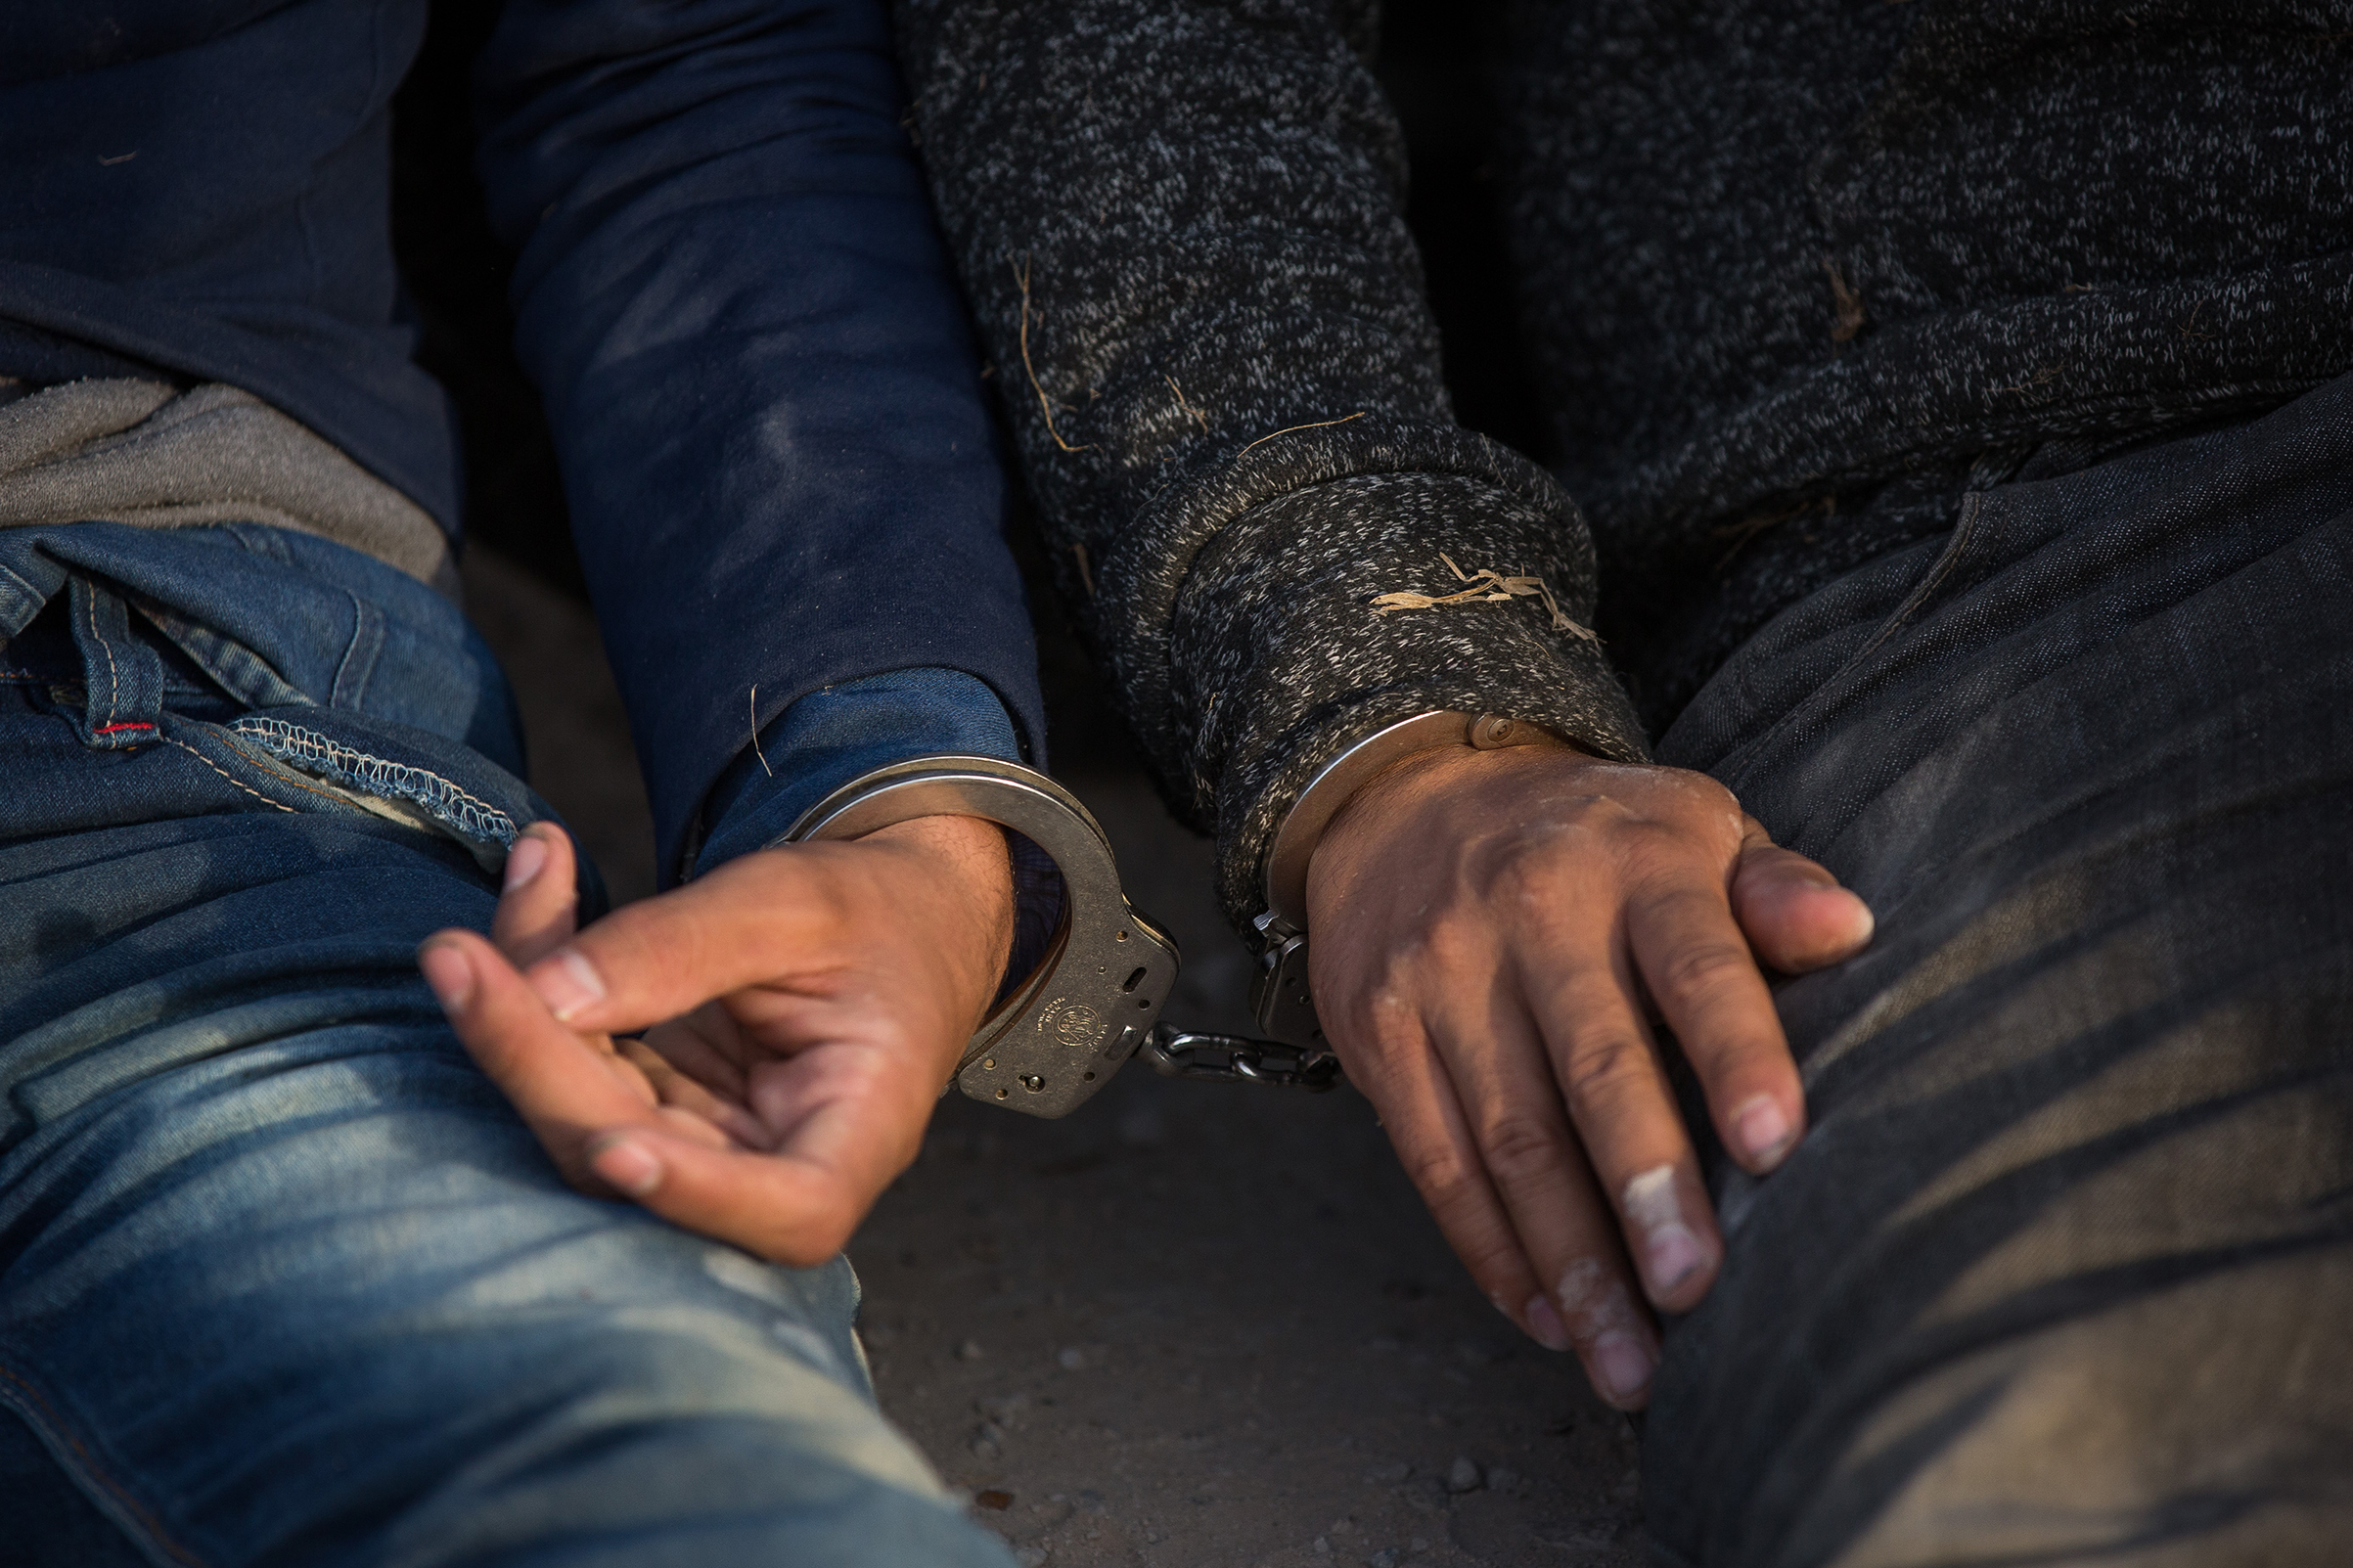 After being apprehended by Border Patrol, illegal immigrants wait to be transported to a central processing center shortly after they crossed the border from Mexico into the United States on Monday, March 26, 2018 in the Rio Grande Valley Sector near McAllen, Texas. - An estimated 11 million undocumented immigrants live in the United States, many of them Mexicans or from other Latin American countries.